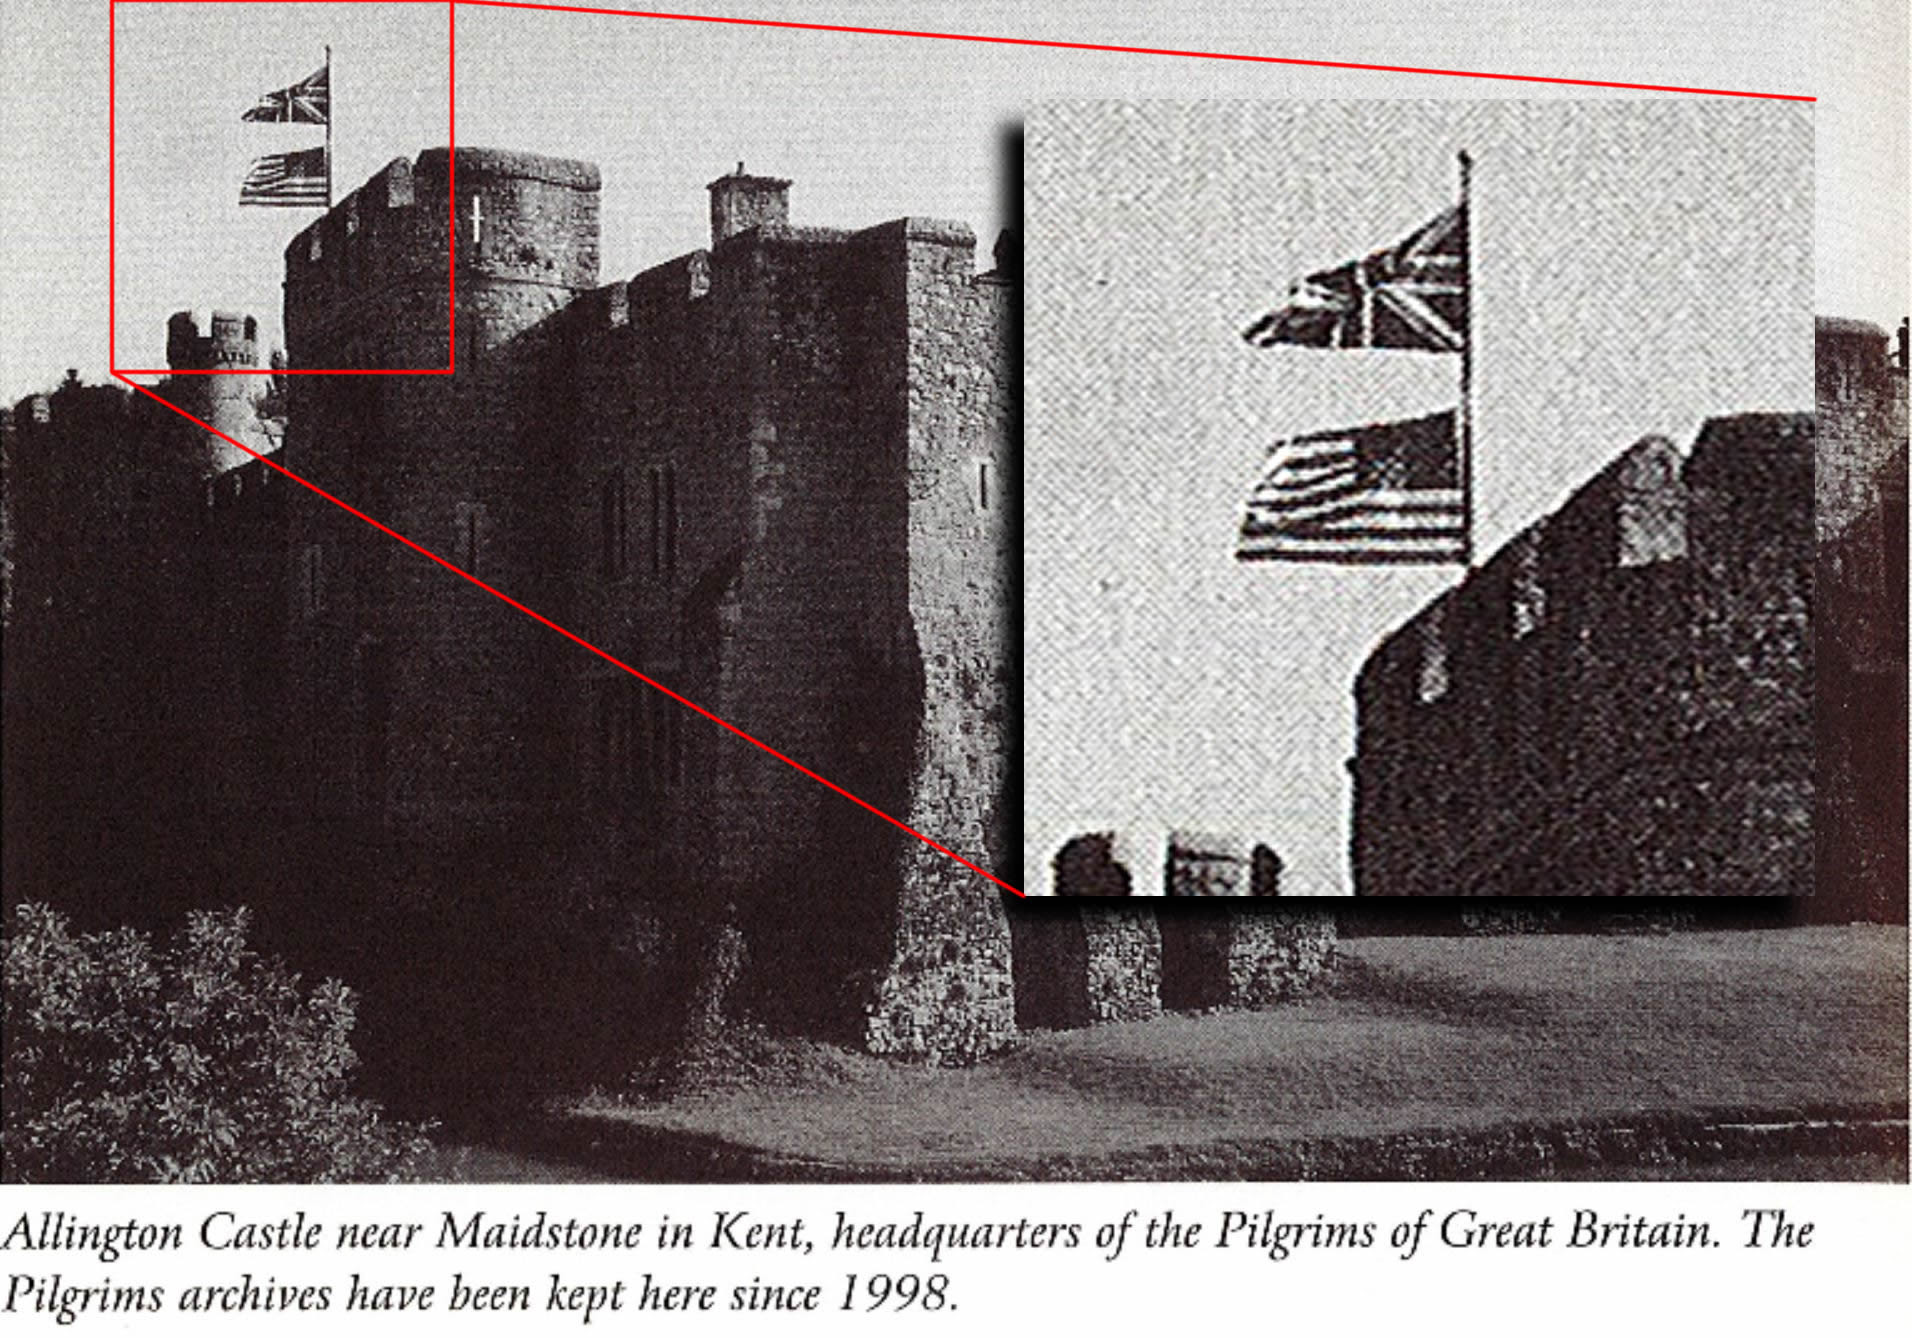 British and American Pilgrims Society archives have been kept at Allington Castle since 1998. Anne Pimlot Baker. (2002). The Pilgrims of Great Britain - A Centennial History, p. 176. Profile Books. Notably, this photo is not contained in the United States version of this book.